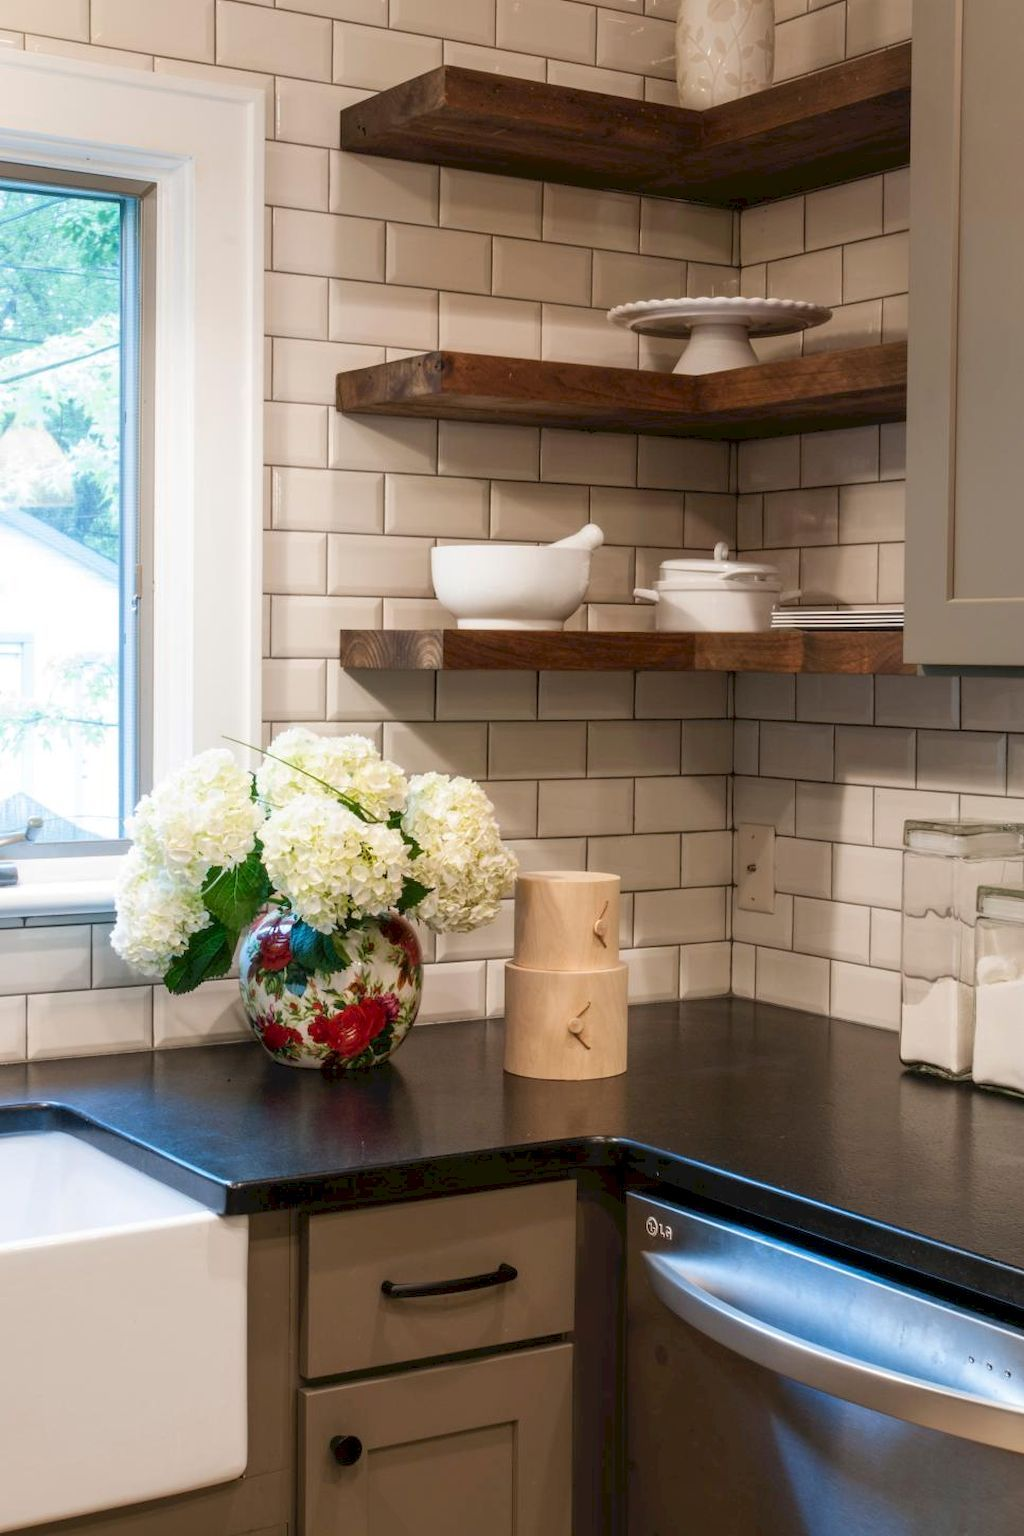 Adorable 50 Small Kitchen Remodel And Shelves Storage Organization Ideas Https Homearchite Co Kitchen Remodel Small Black Kitchen Countertops Kitchen Remodel